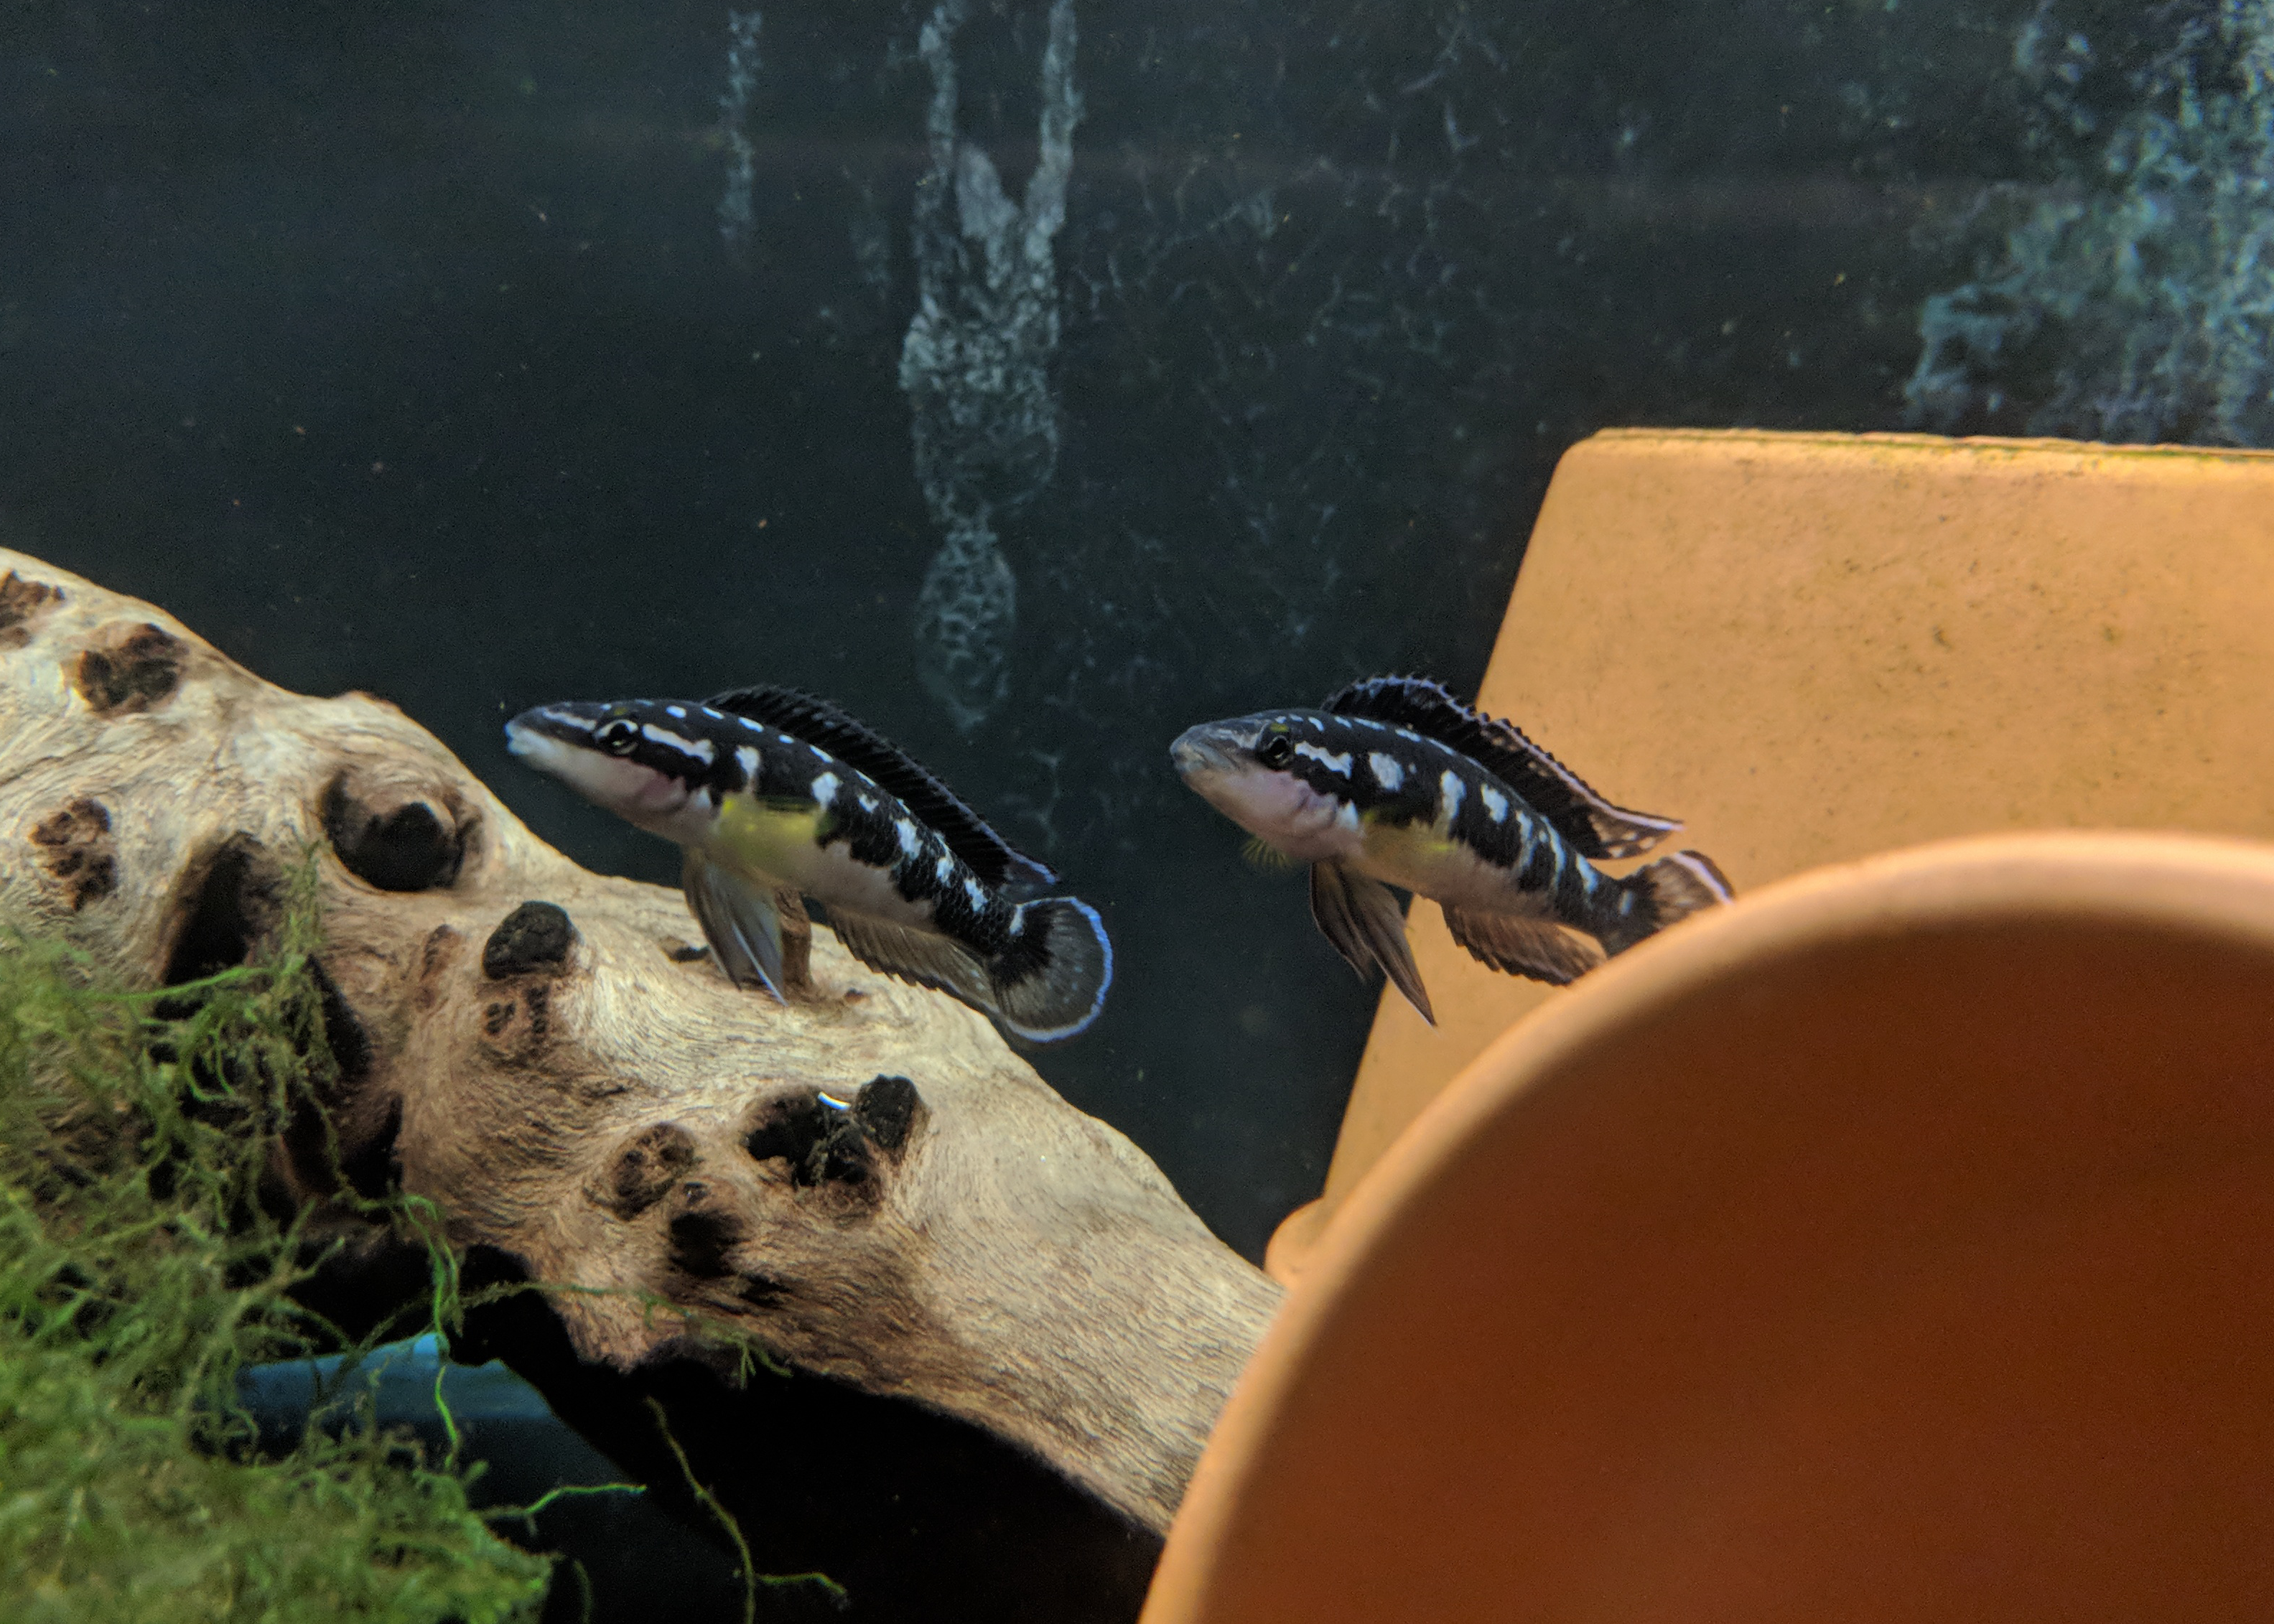 two black and white fish